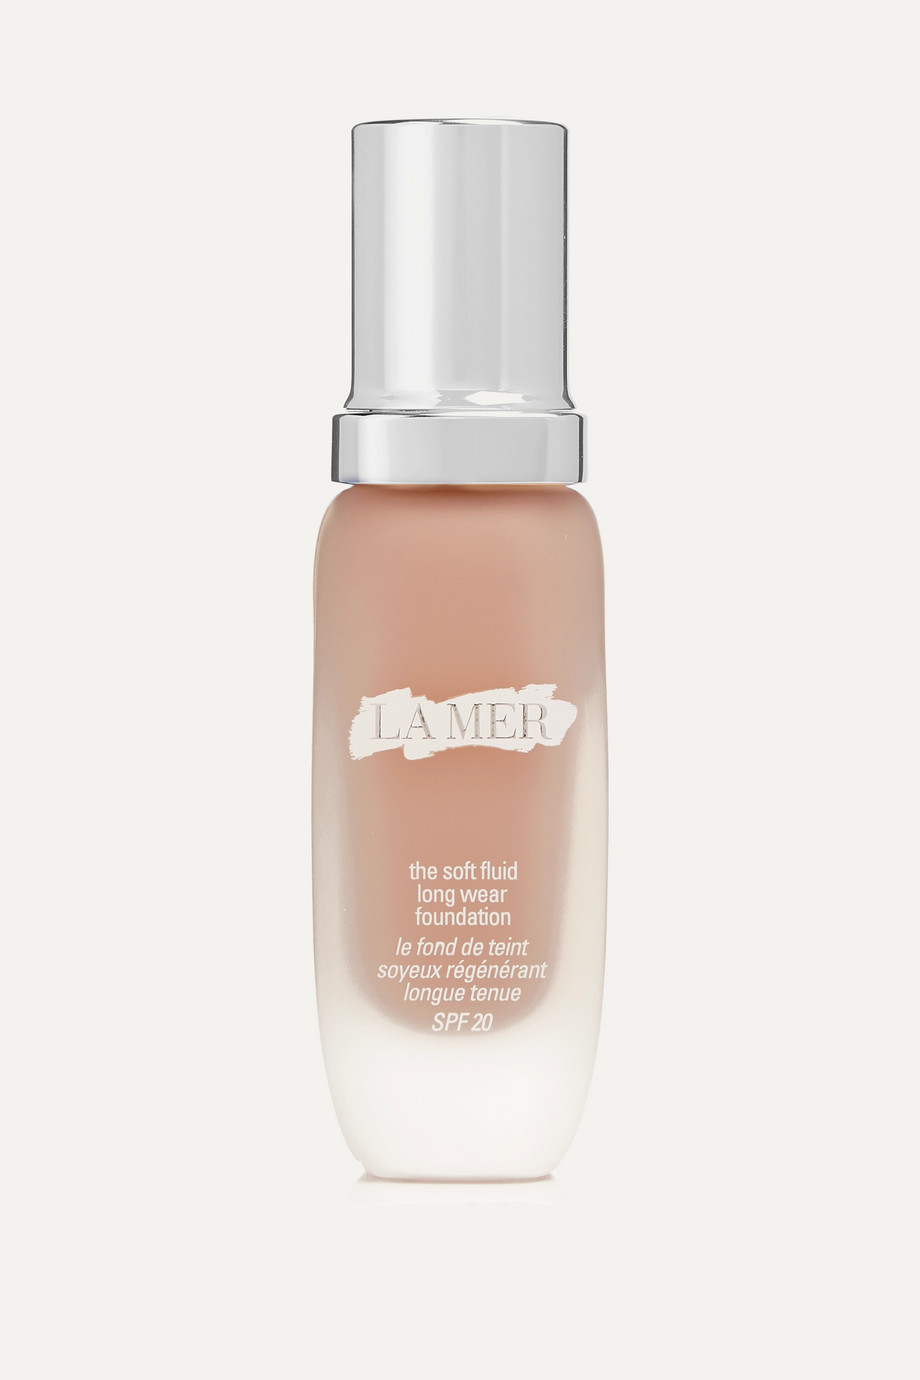 La Mer The Soft Fluid Long Wear Foundation SPF20 - 300 Taupe, 30ml